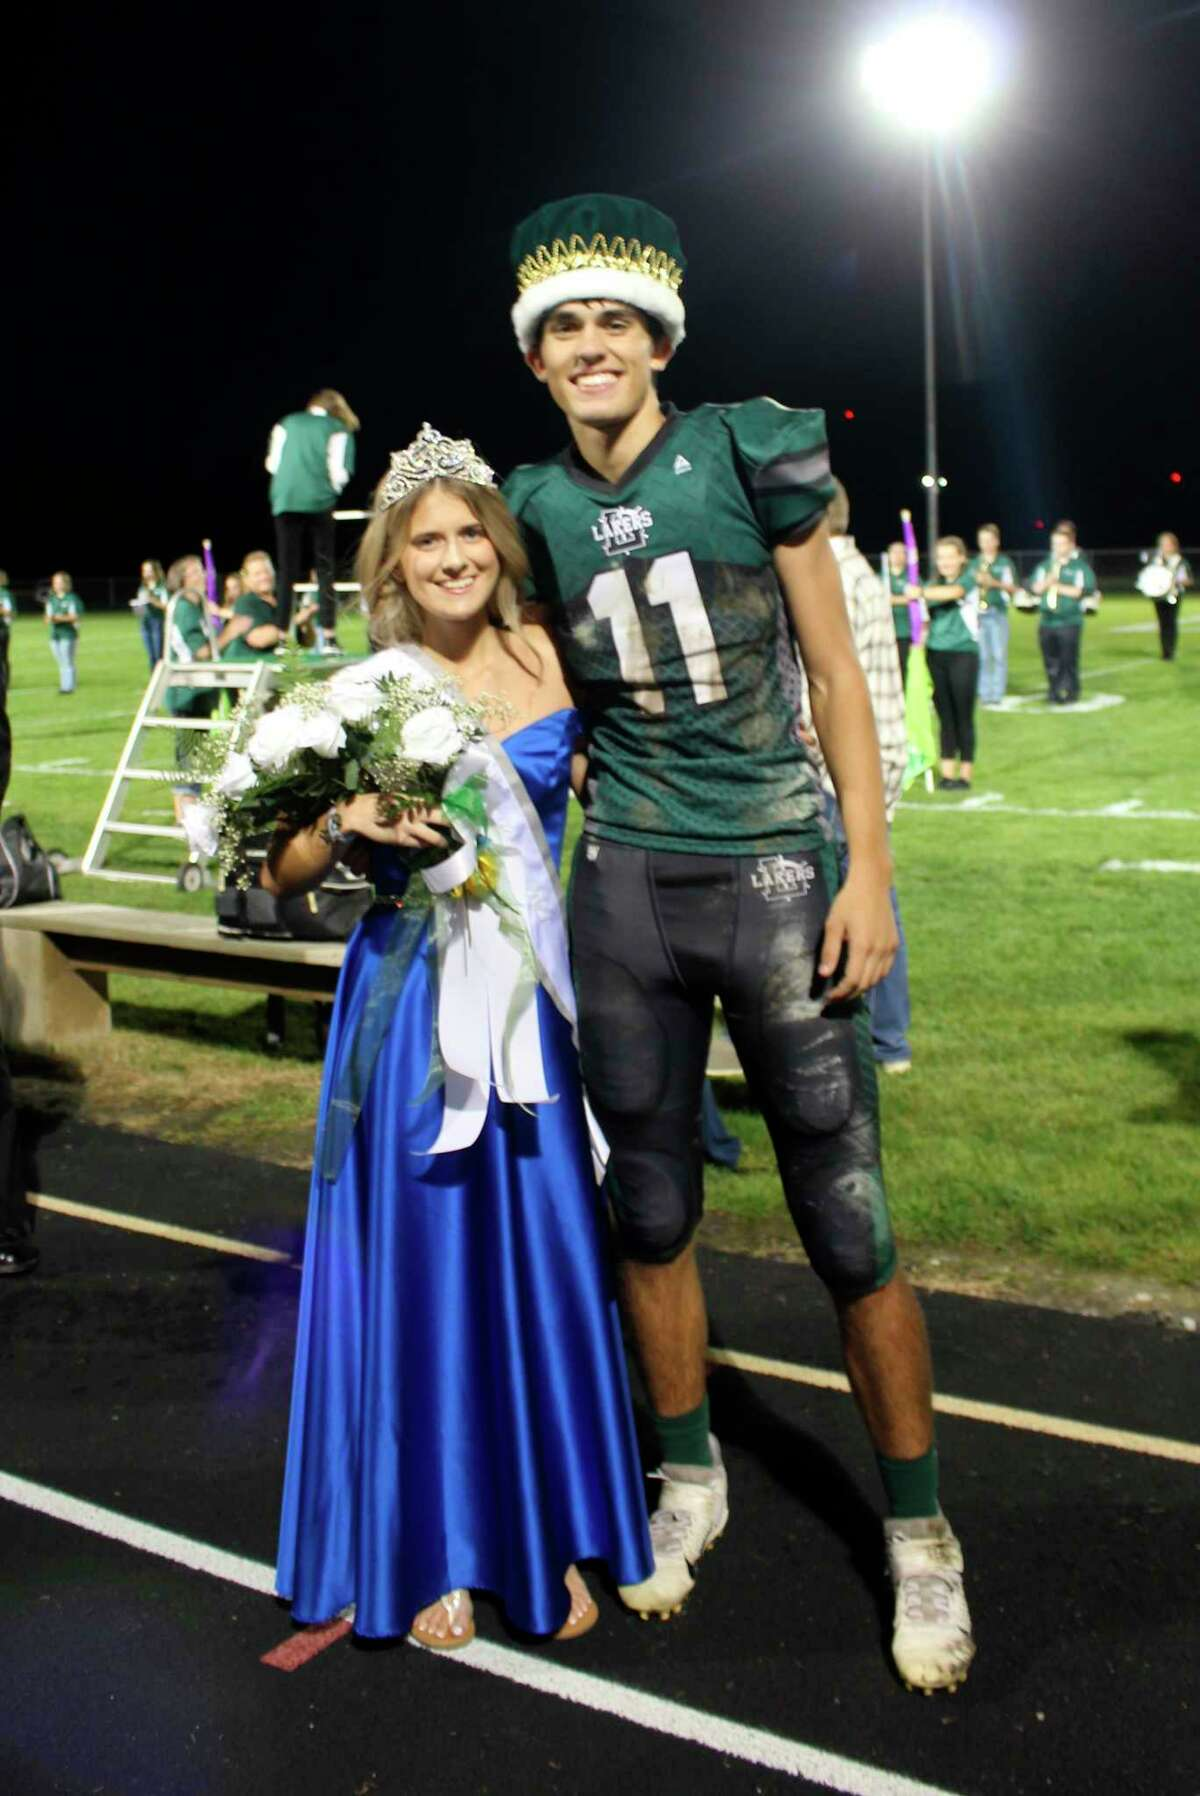 Dylan Wehner was crownedand Ryleigh Tateare crowned as the Laker Homecoming royalty. (Courtesy Photo)